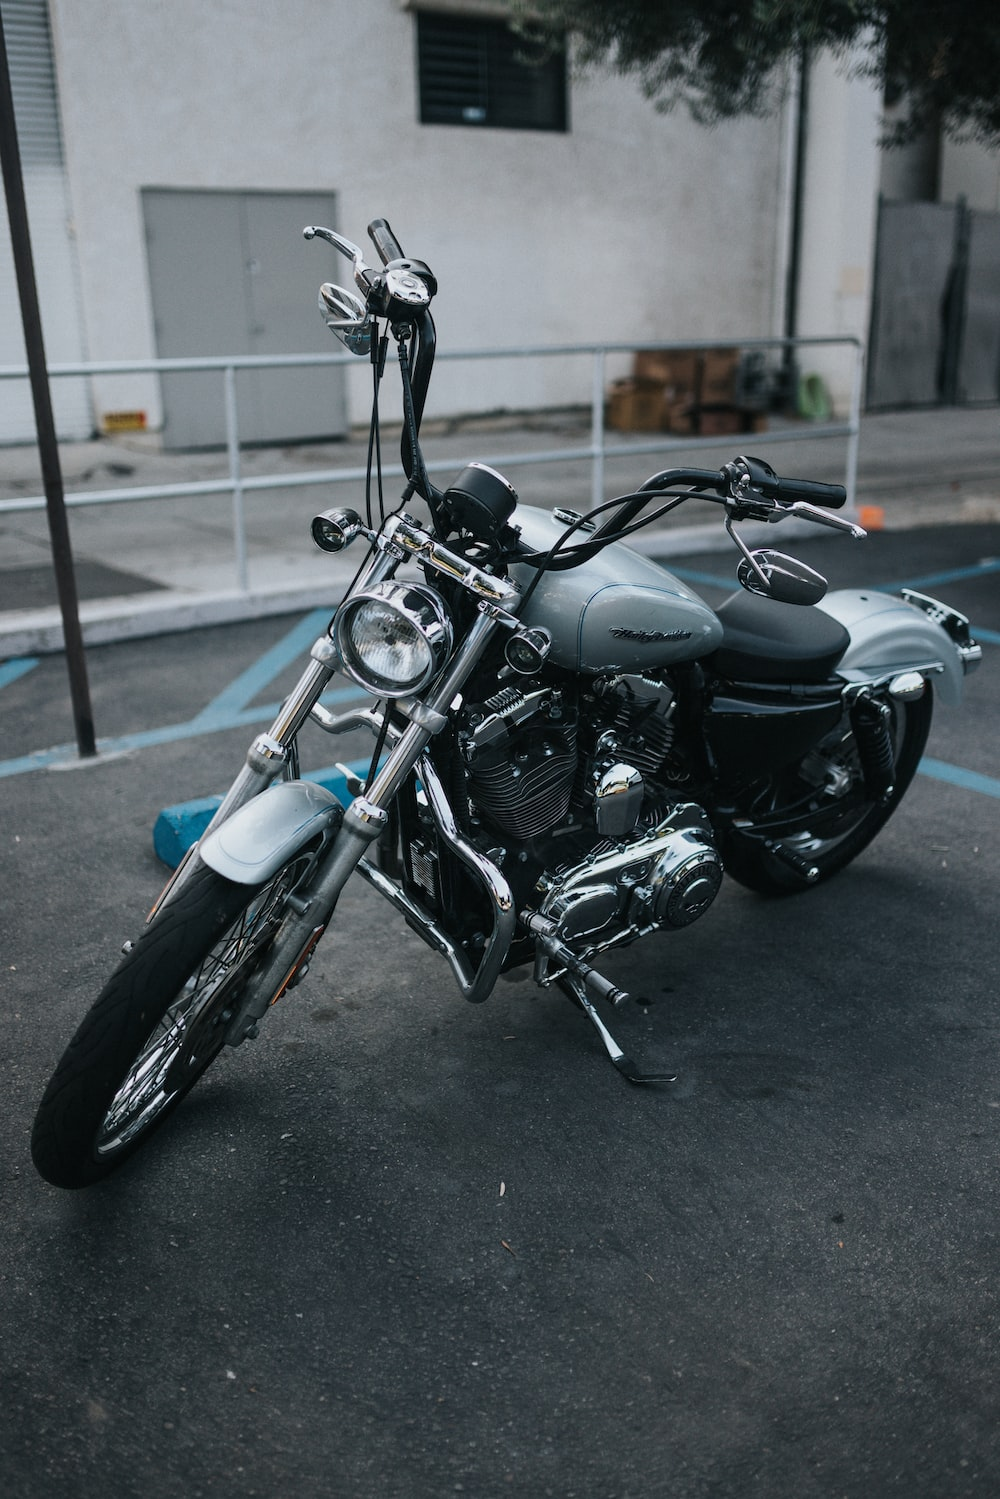 black and blue motorcycle parked on gray concrete floor during daytime